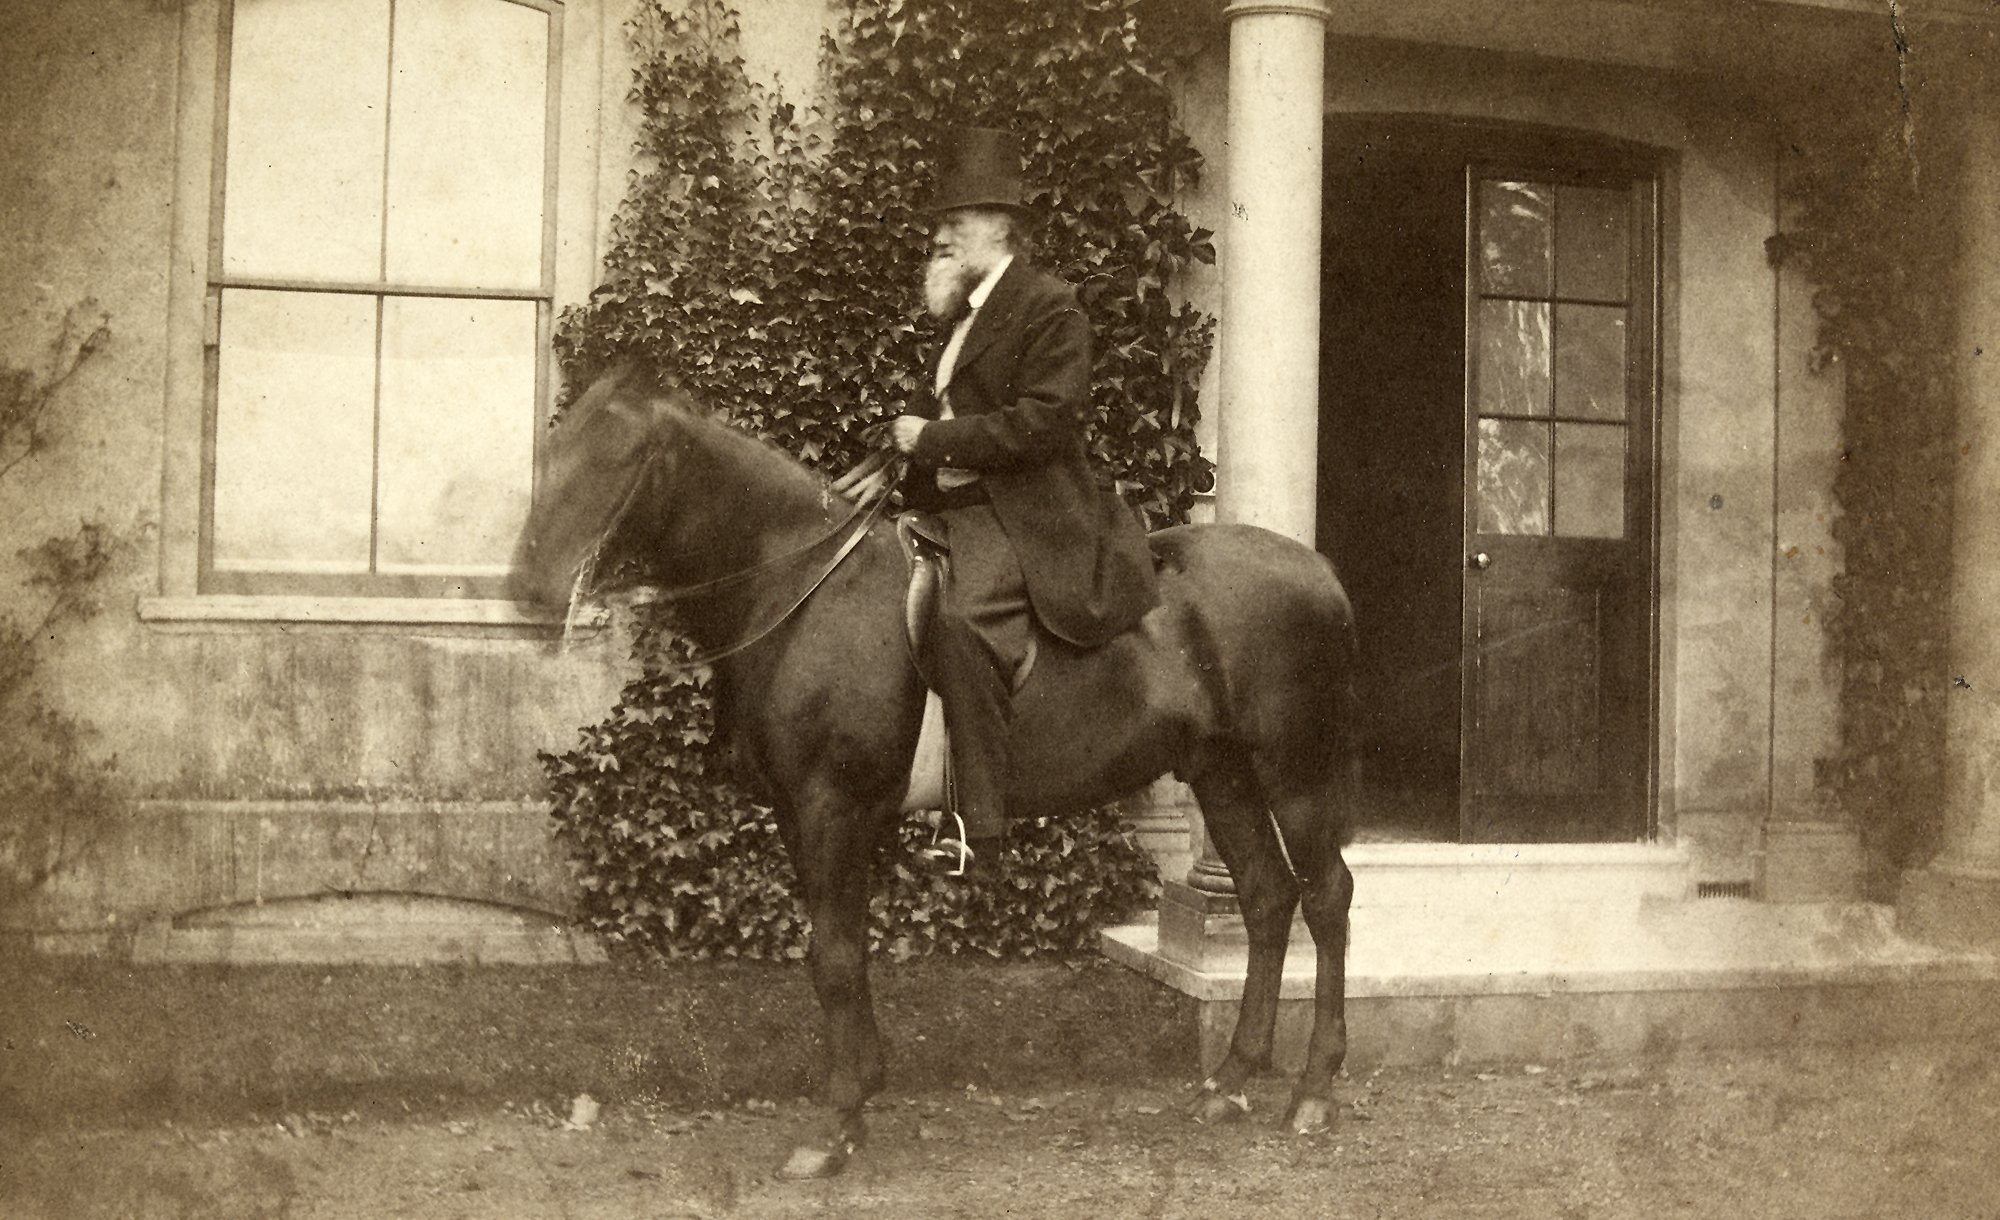 Charles Darwin on his horse, Tommy